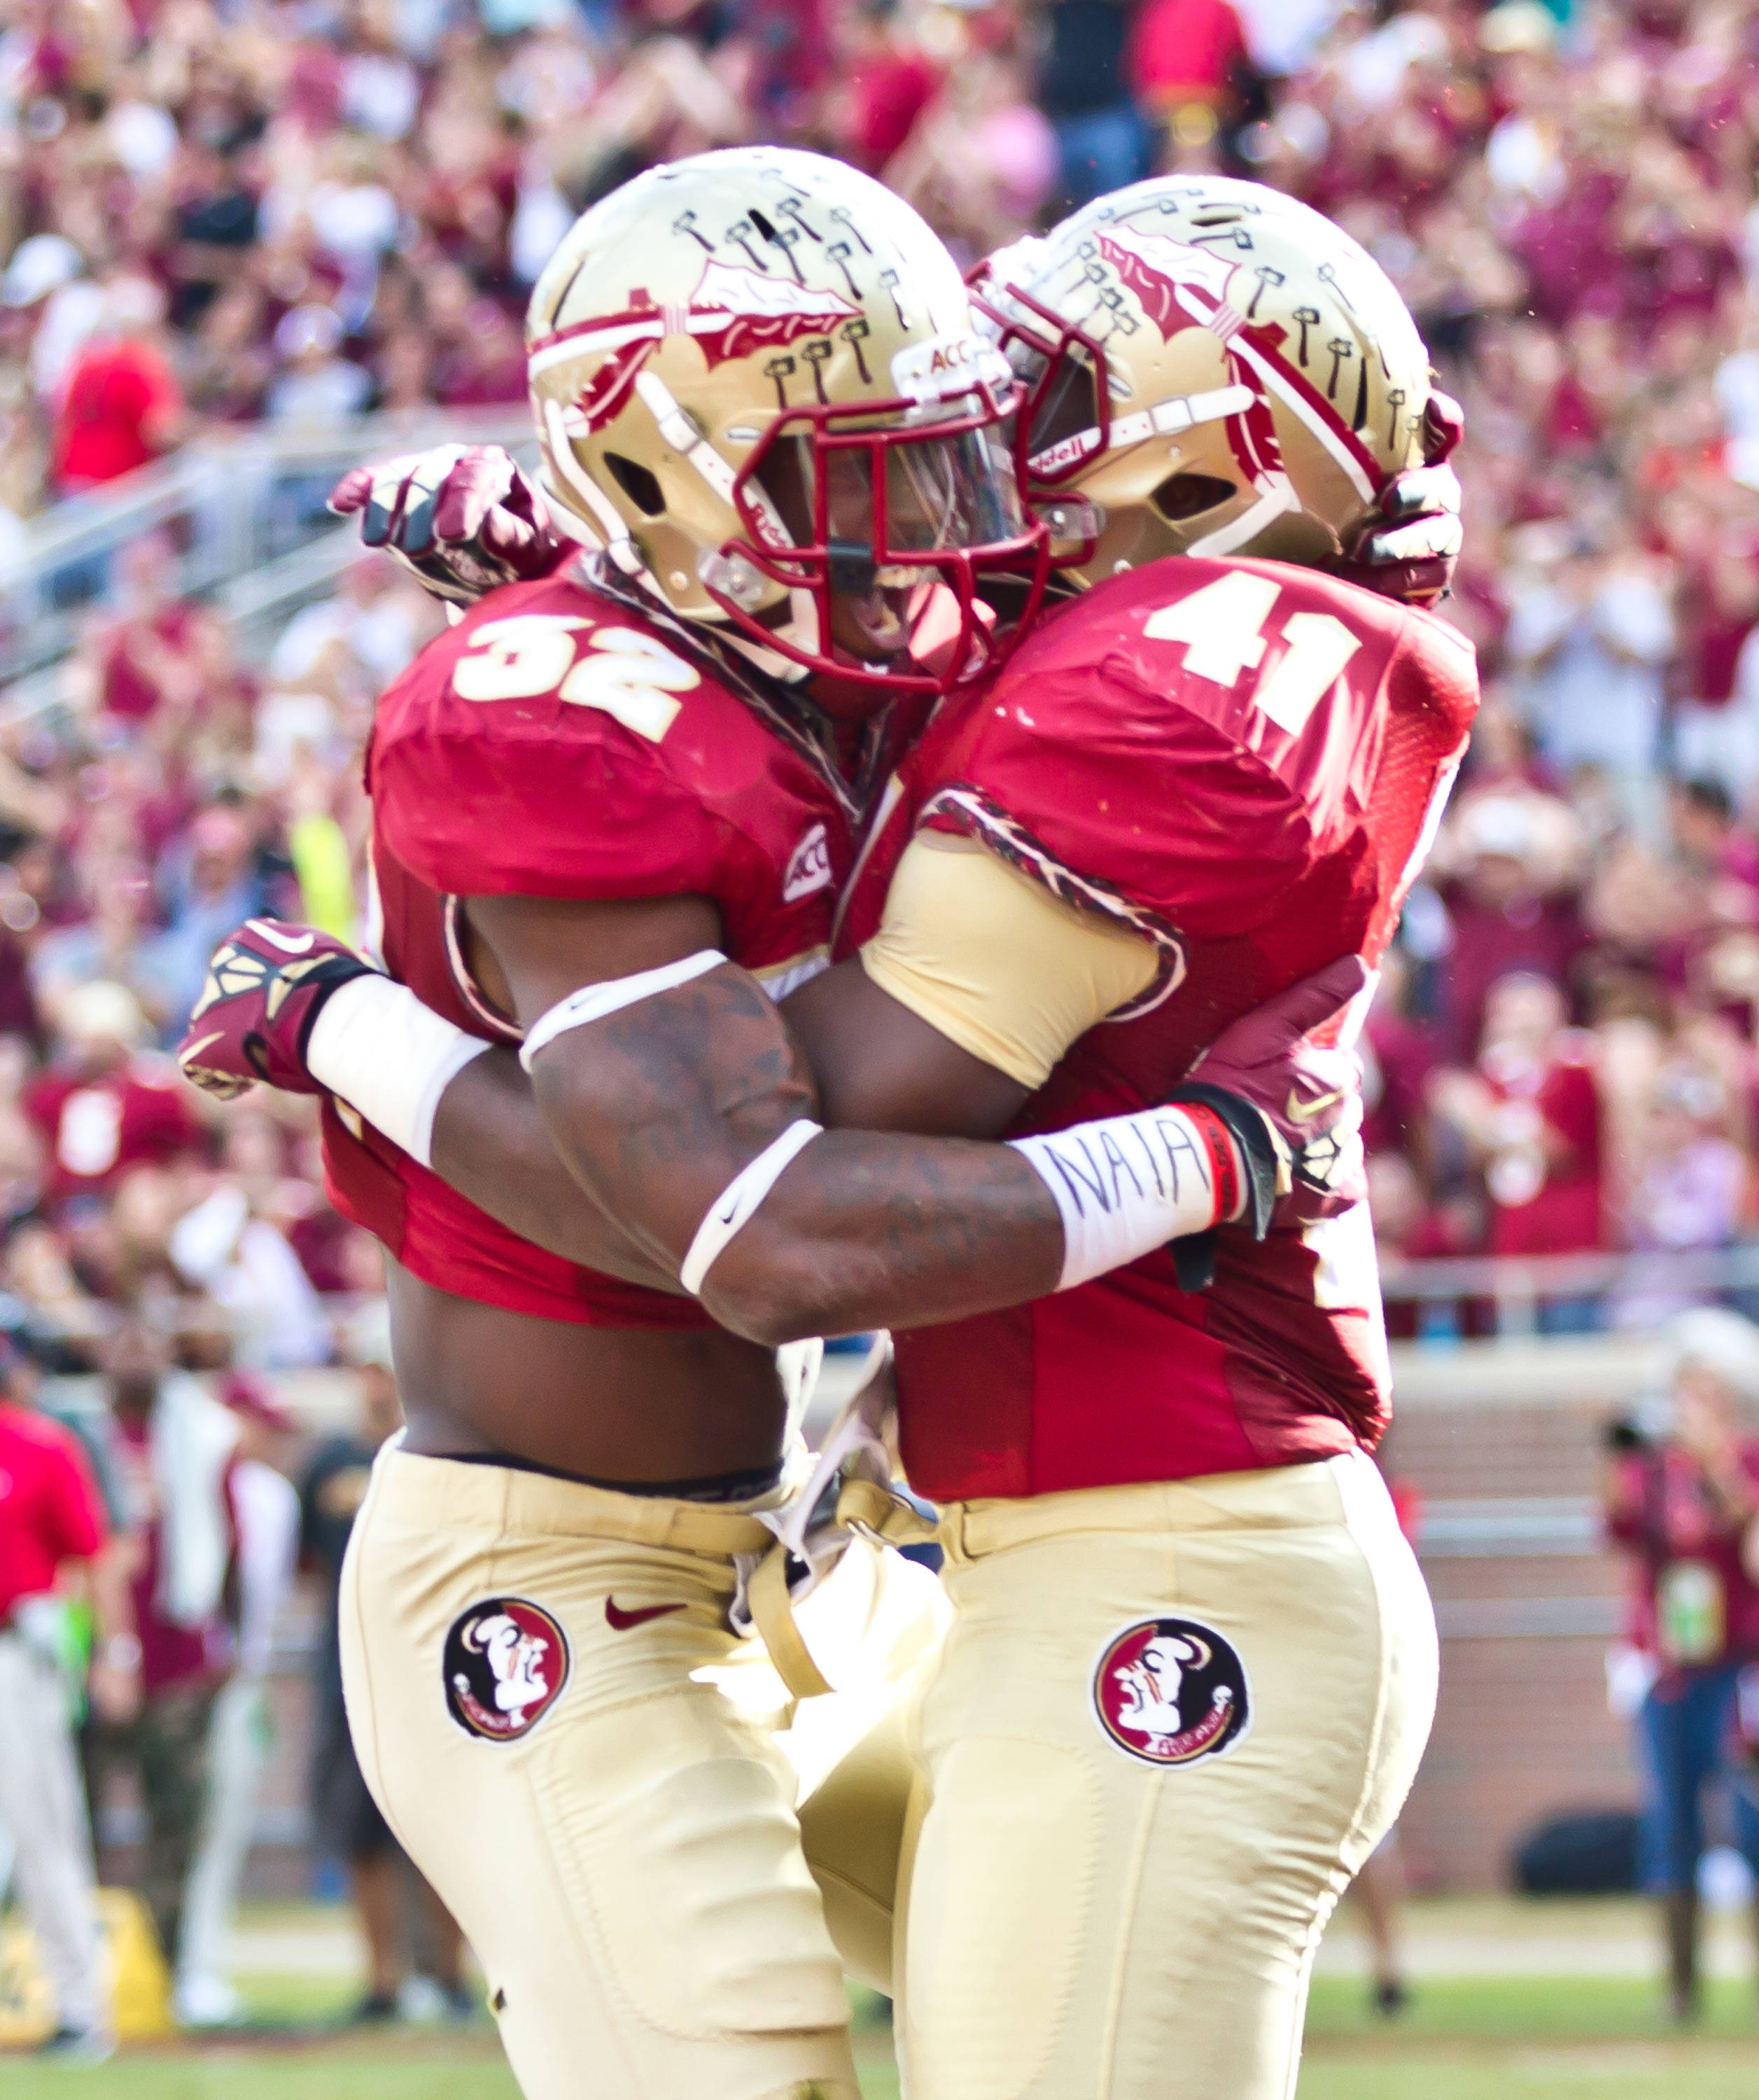 Chad Abram (41) and James Wilder, Jr. (32) celebrate Wilder's 1st quarter TD.